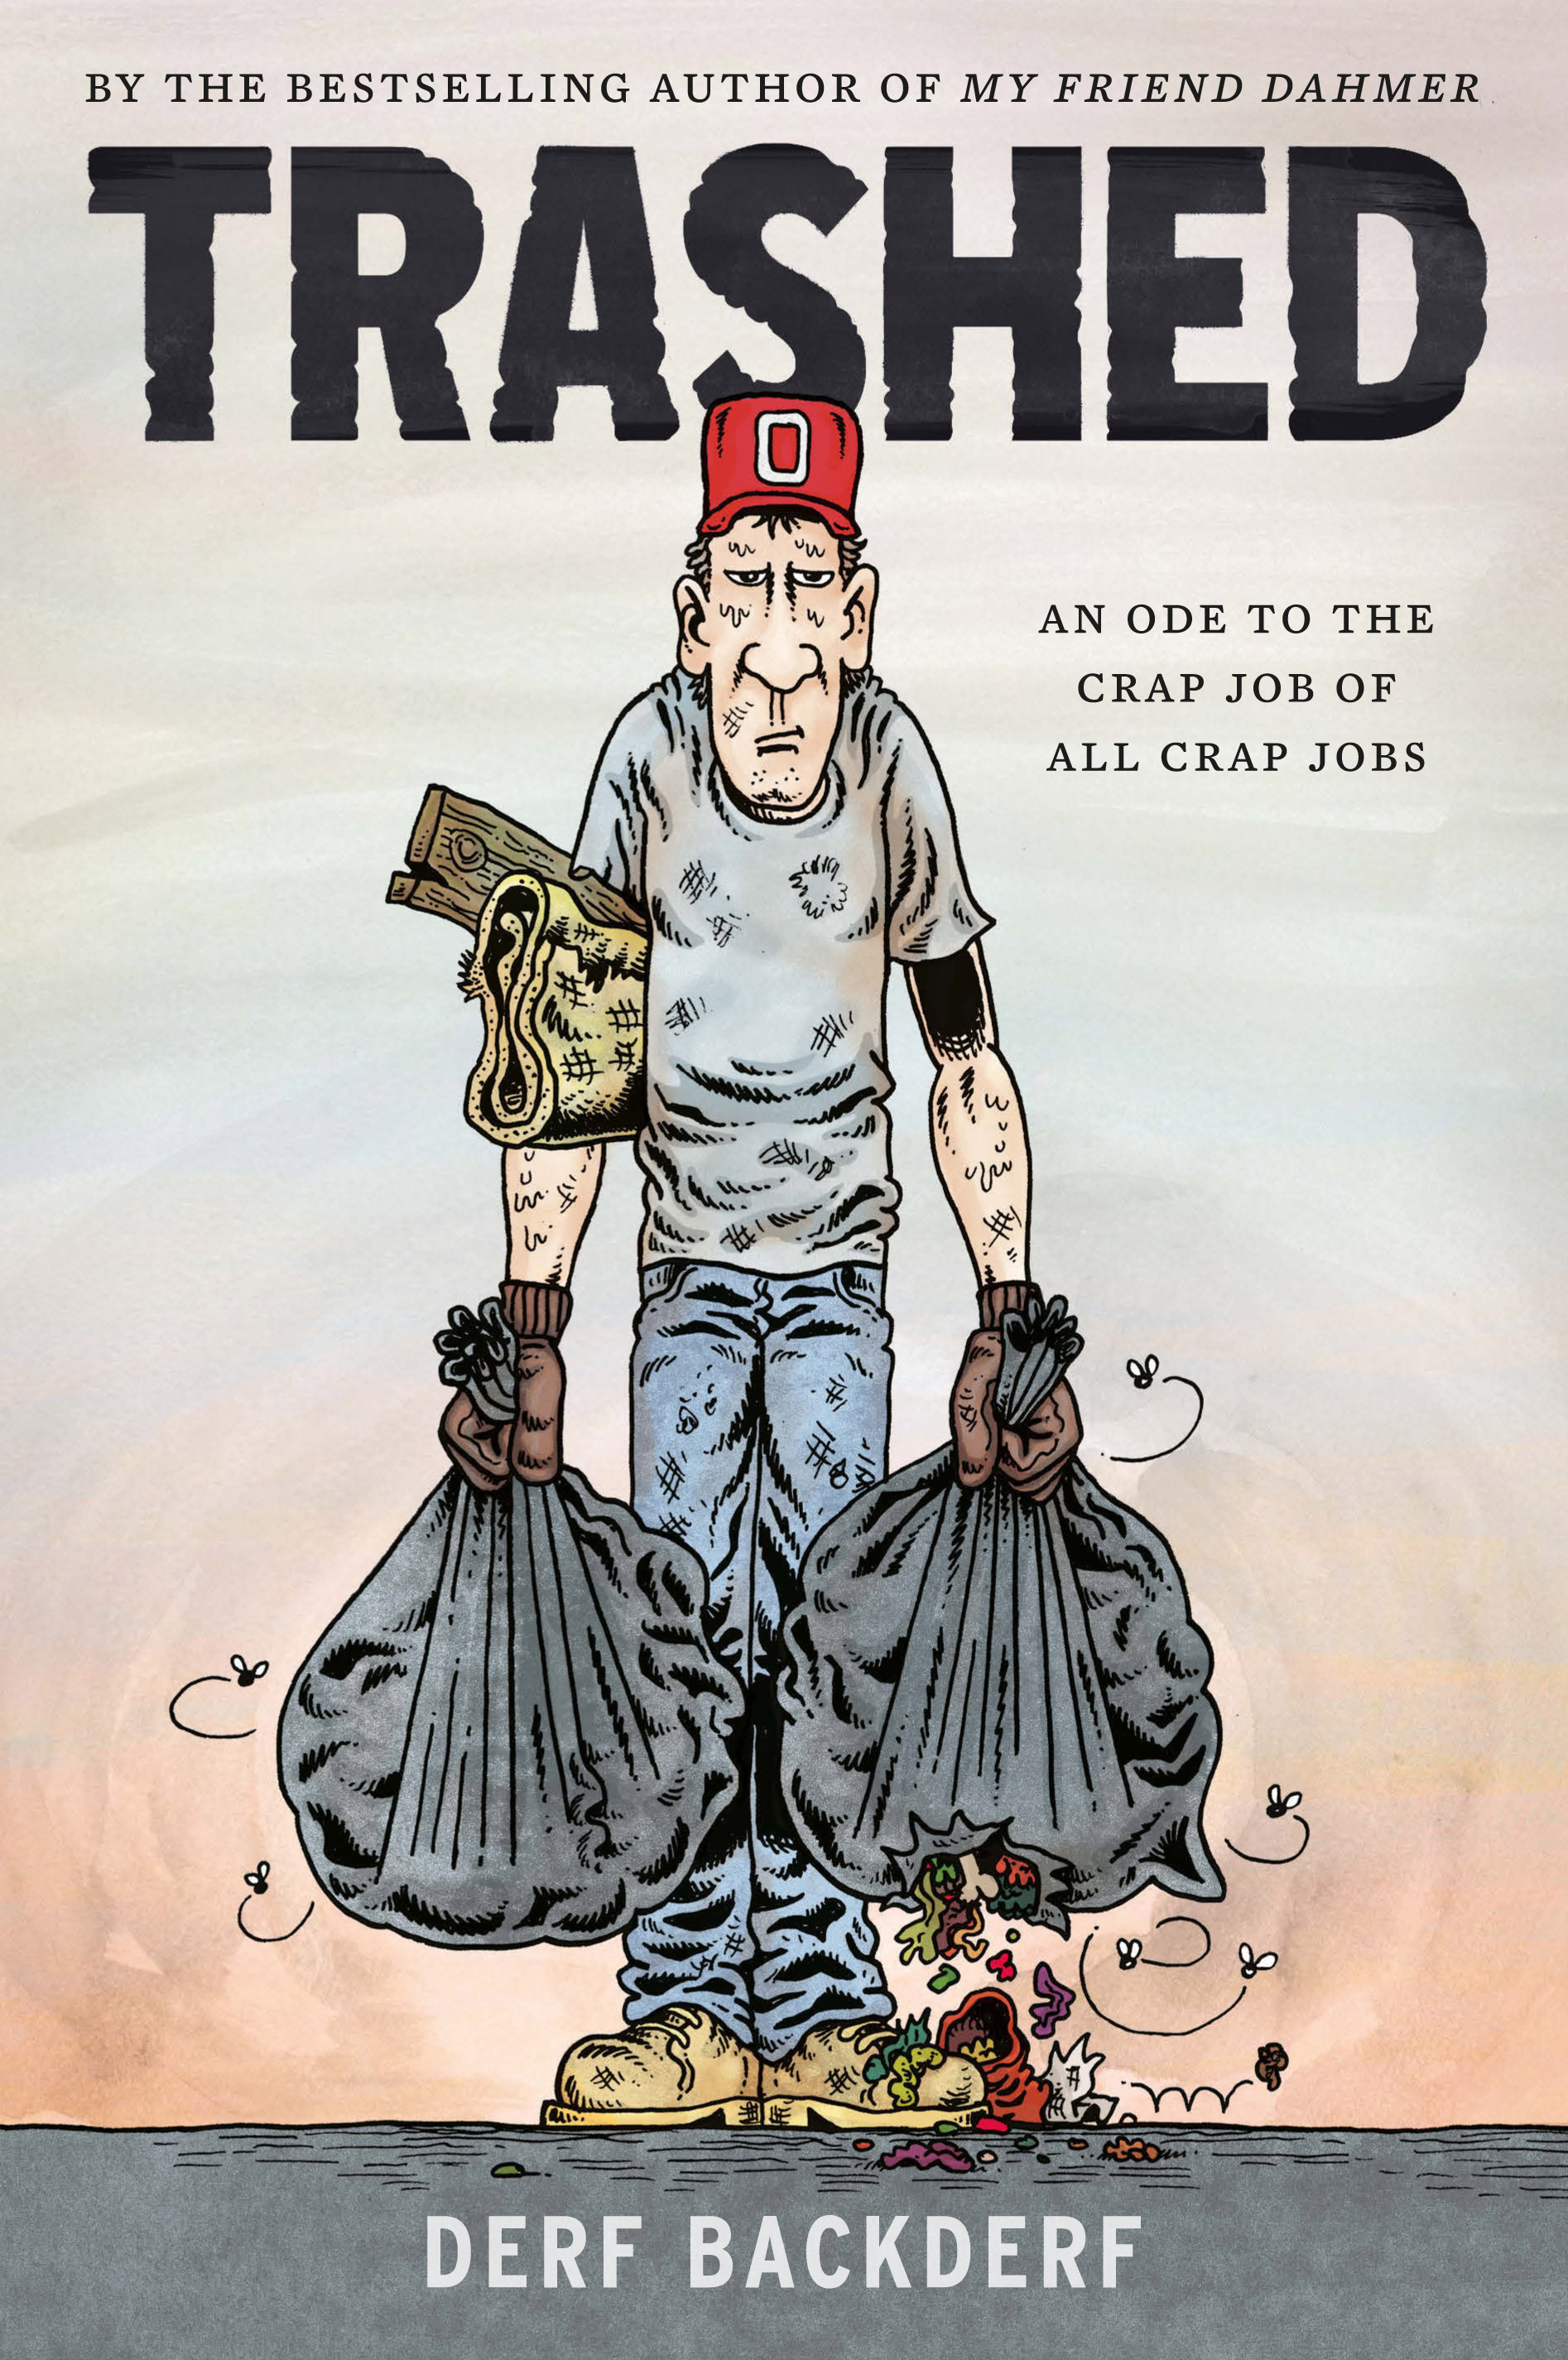 Read online Trashed comic -  Issue # Full - 1